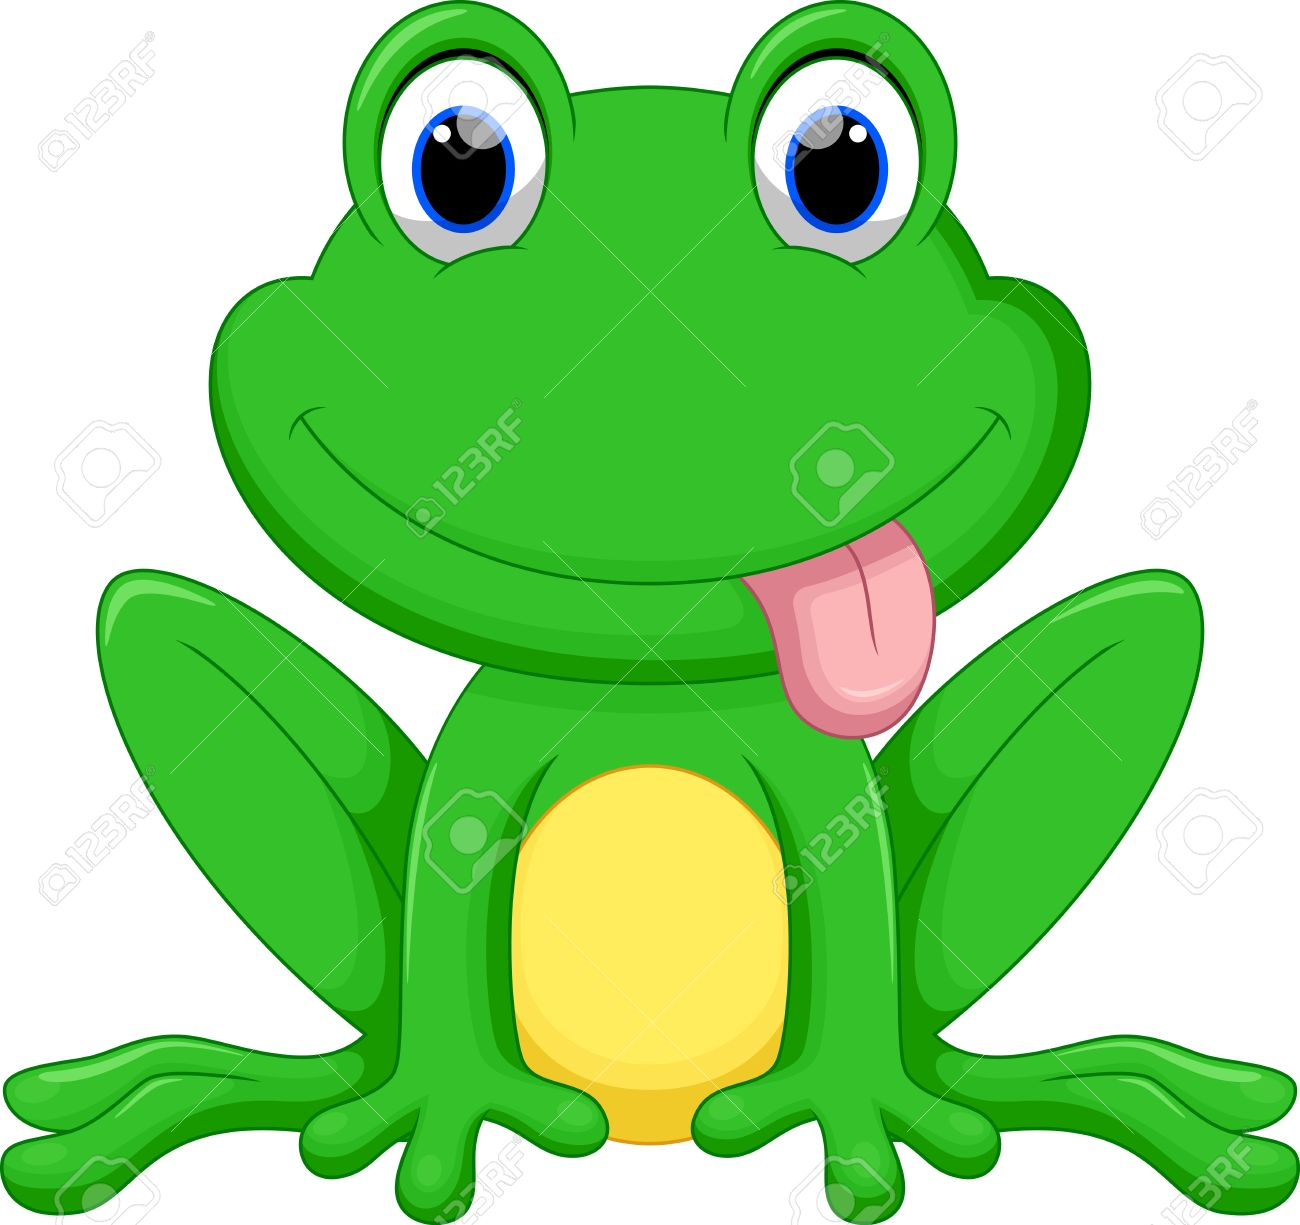 cute frog cartoon royalty free cliparts vectors and stock rh 123rf com Frog Silhouette Vector The Crocodile